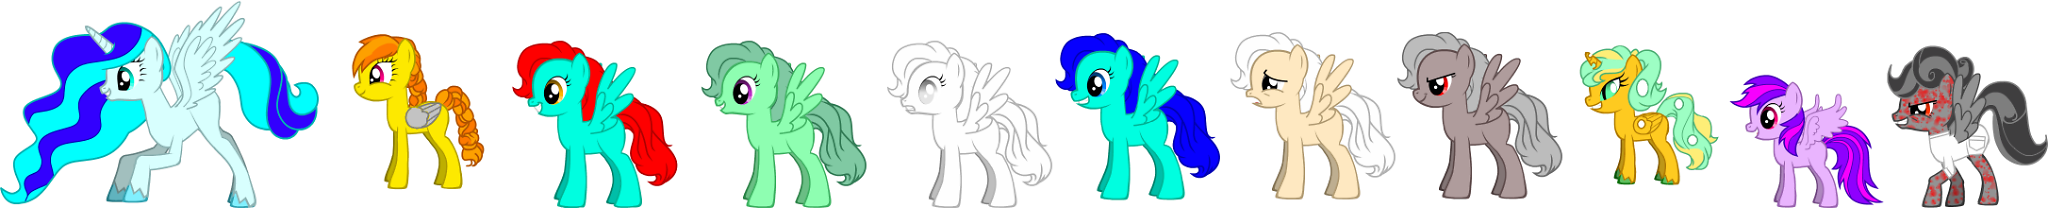 Whats your mlp fan character name? (and what she/he looks like)